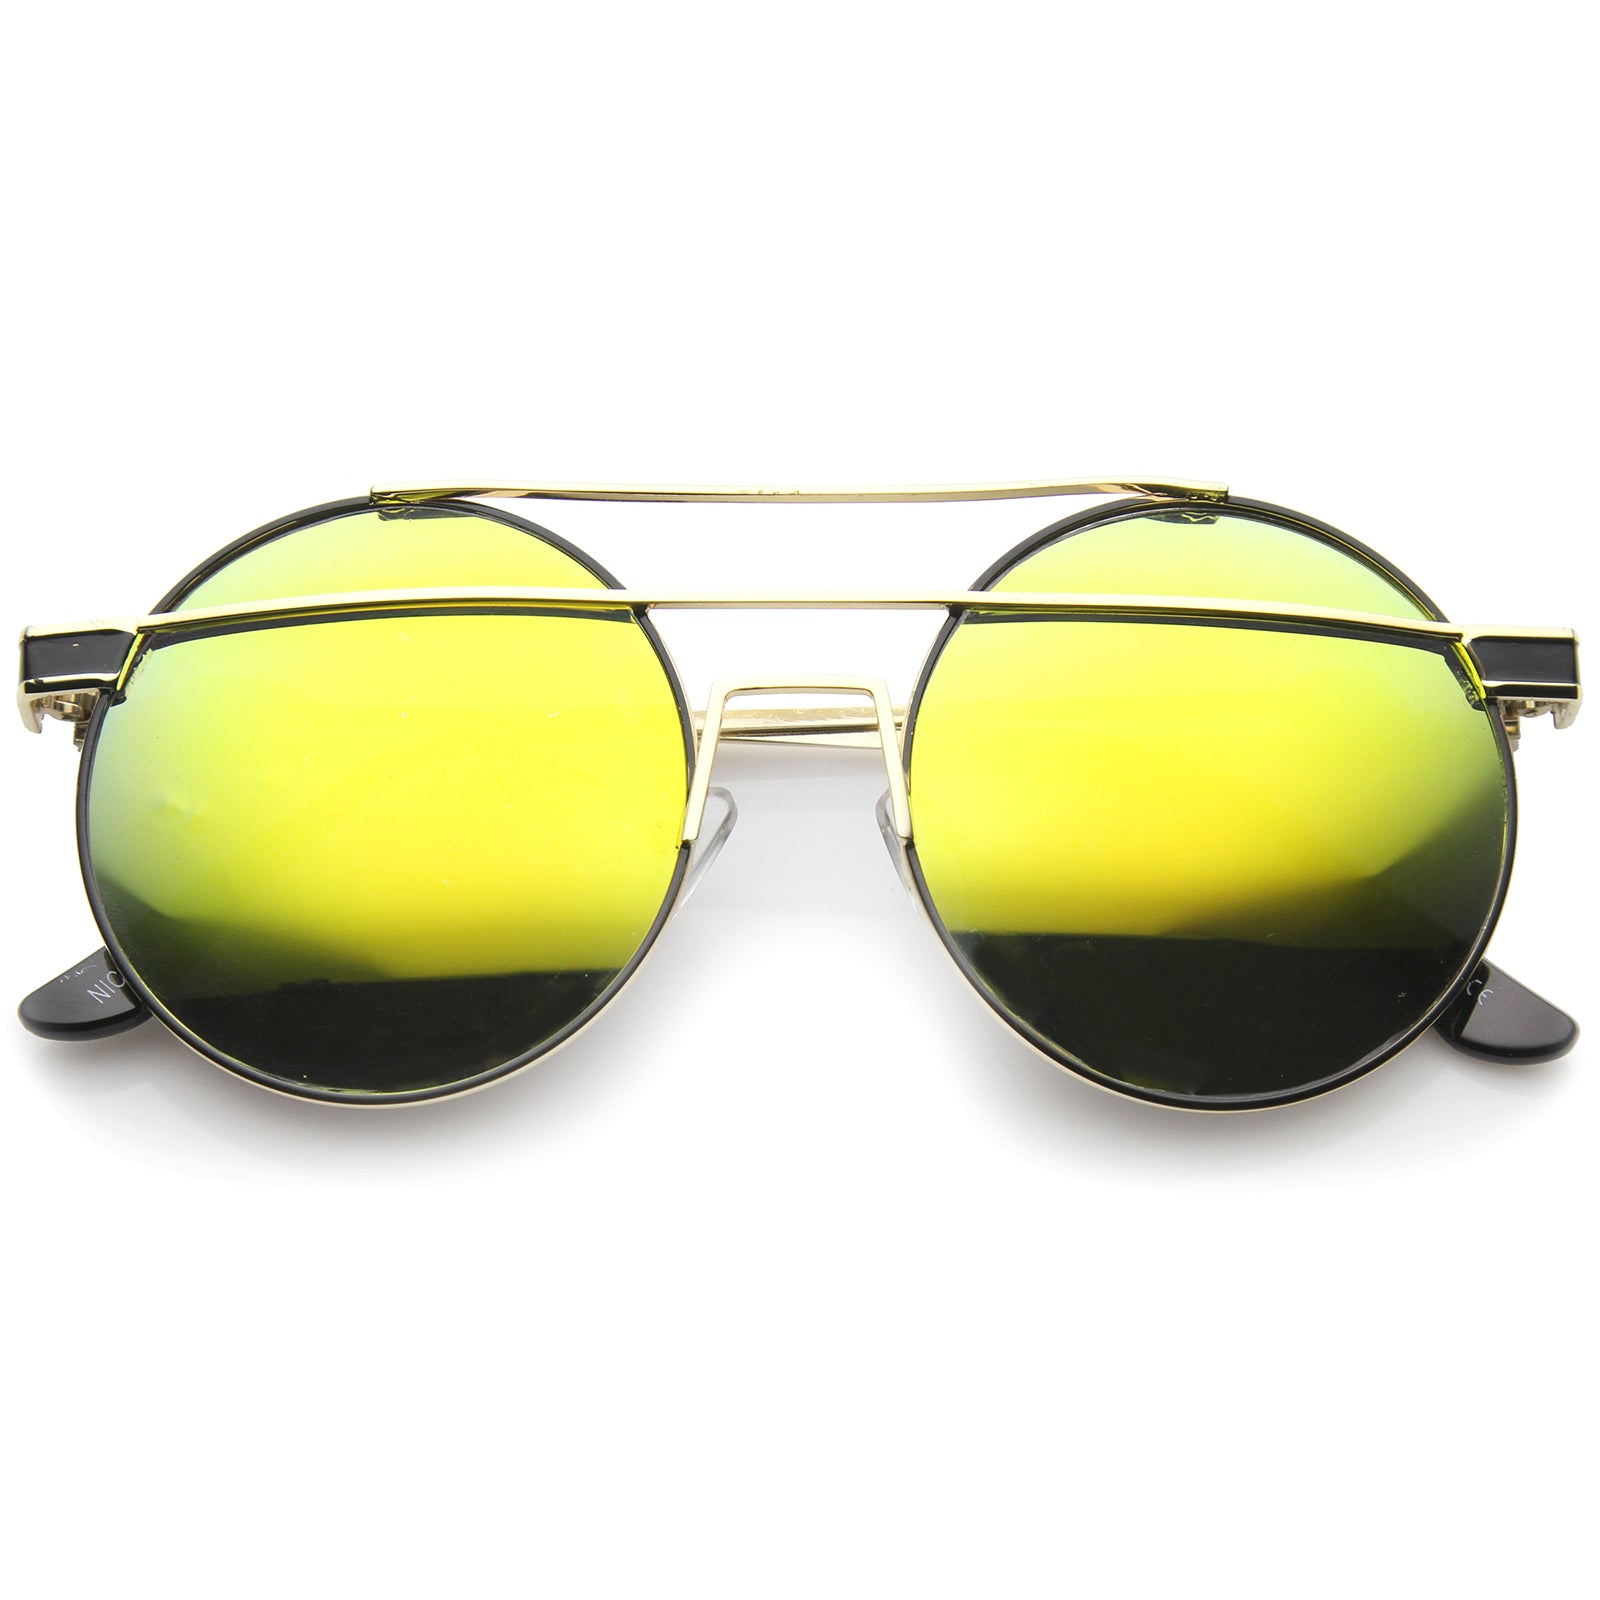 Modern Metal Frame Double Bridge Colored Mirror Lens Round Sunglasses 59mm - sunglass.la - 5